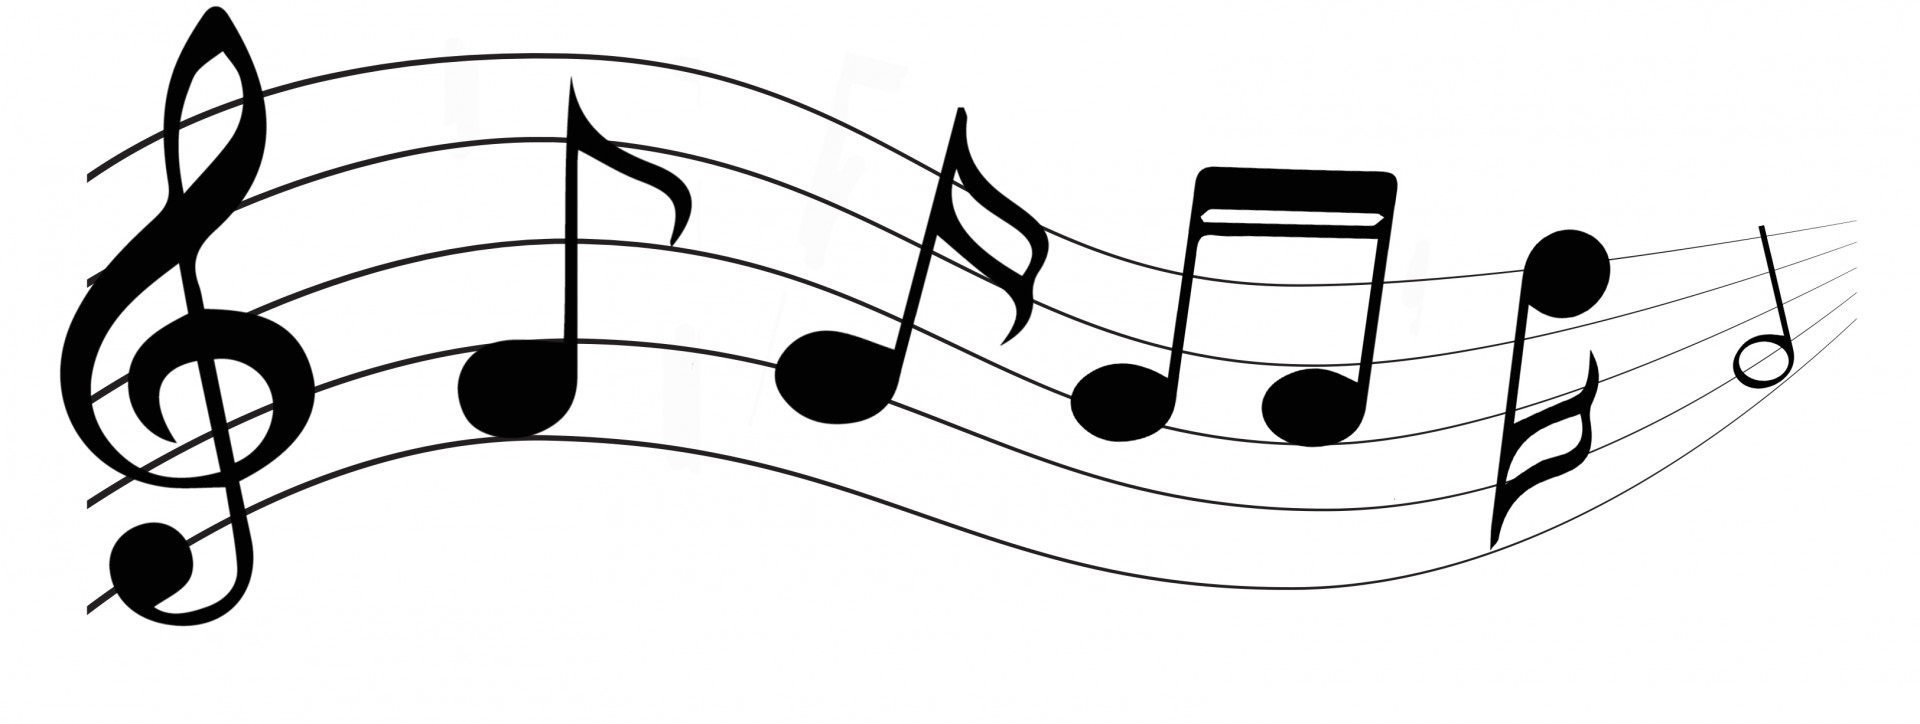 music,notes,gcleft,quaver,semiquaver,crotchet,musical notes,free pictures, free photos, free images, royalty free, free illustrations, public domain